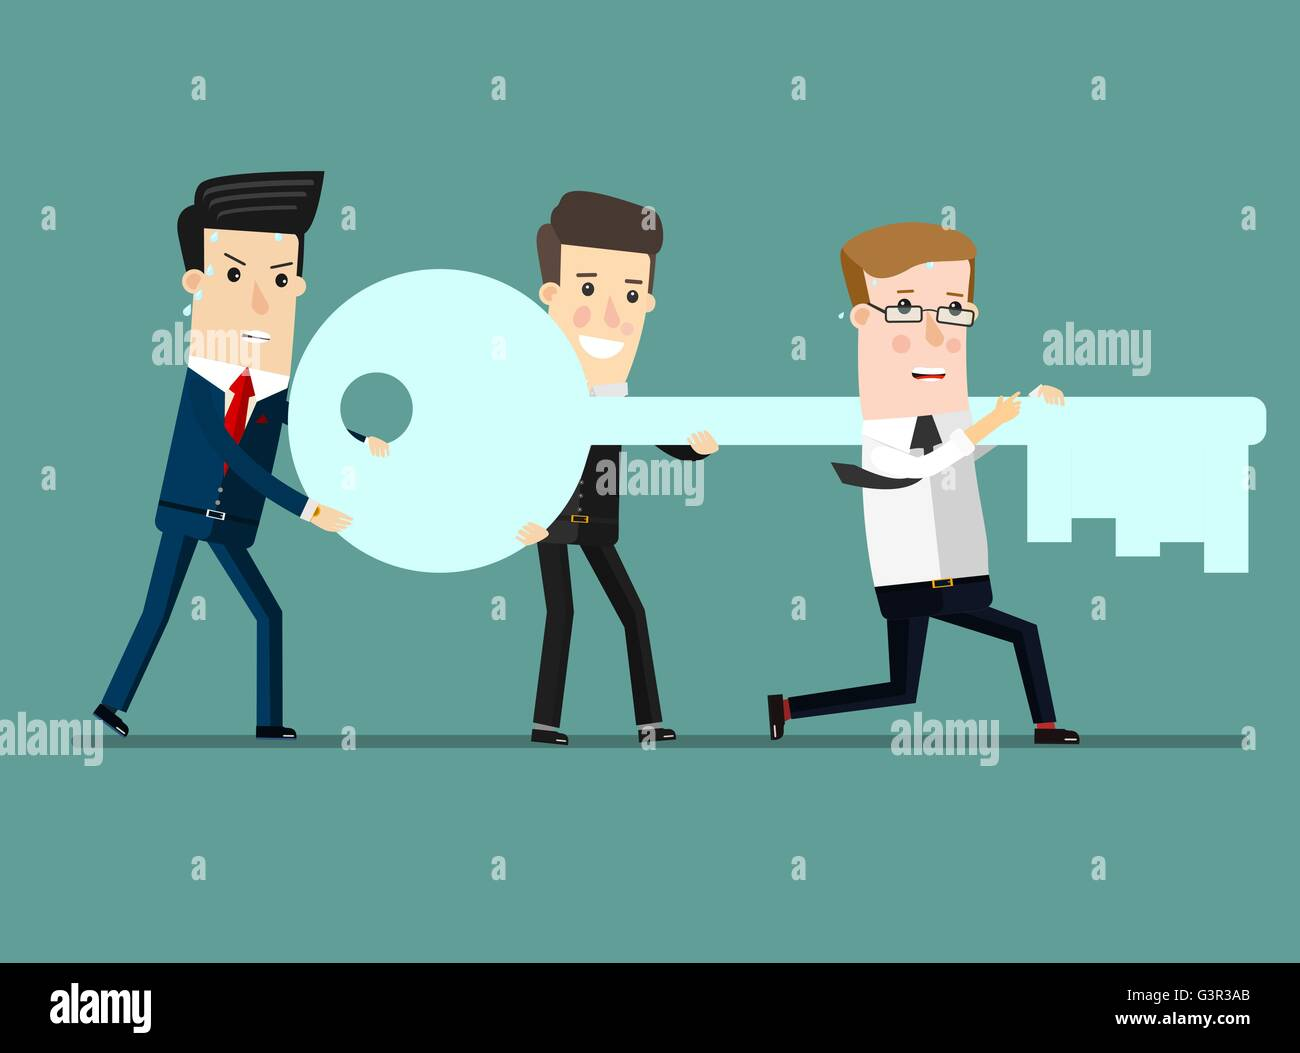 Flat design vector illustration concept of team work. Businessman and businesswoman go to the door with a key. - Stock Vector